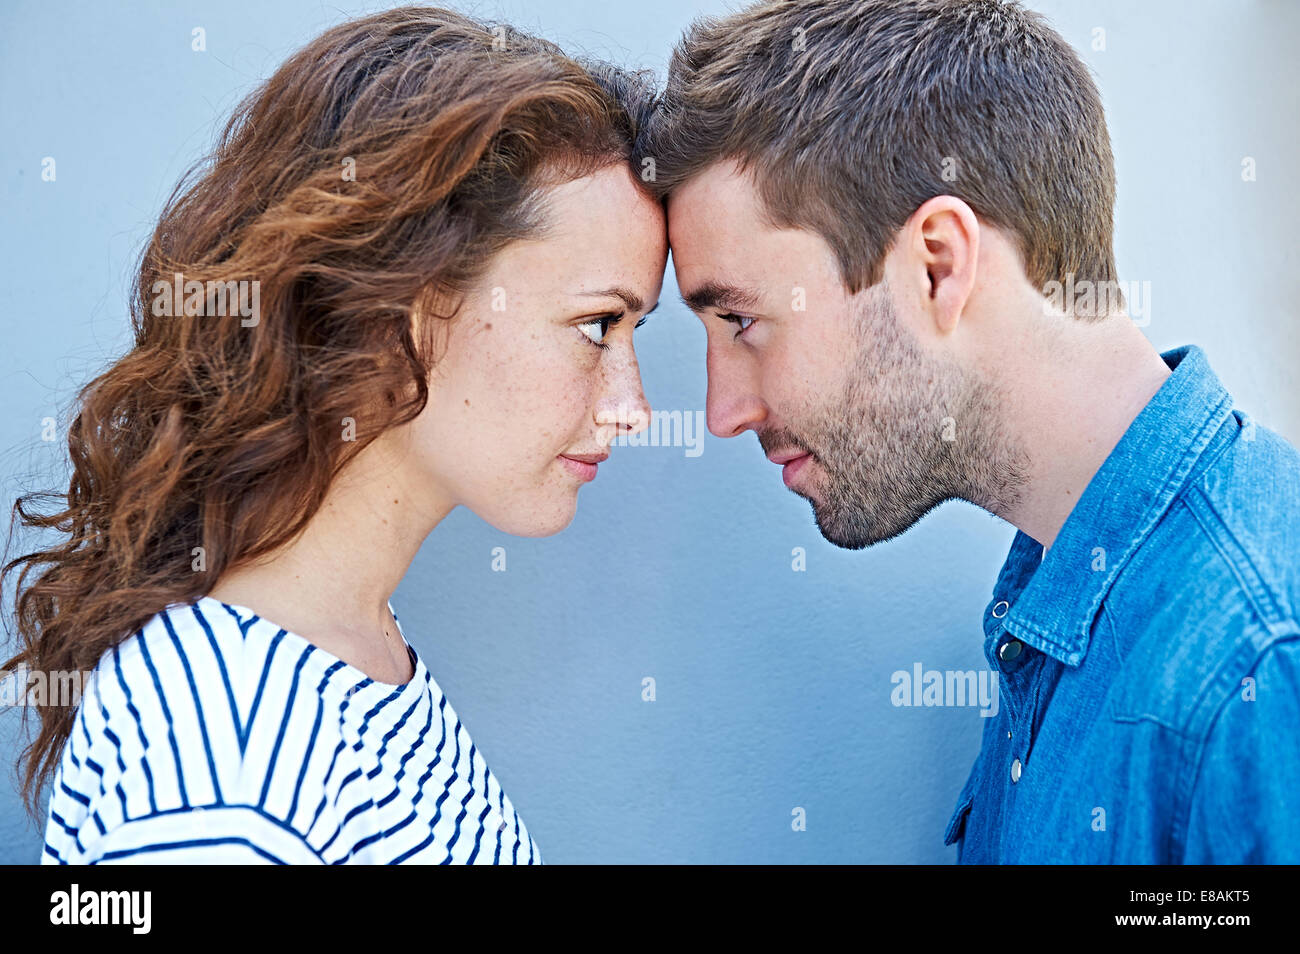 Close up of couple forehead to forehead - Stock Image